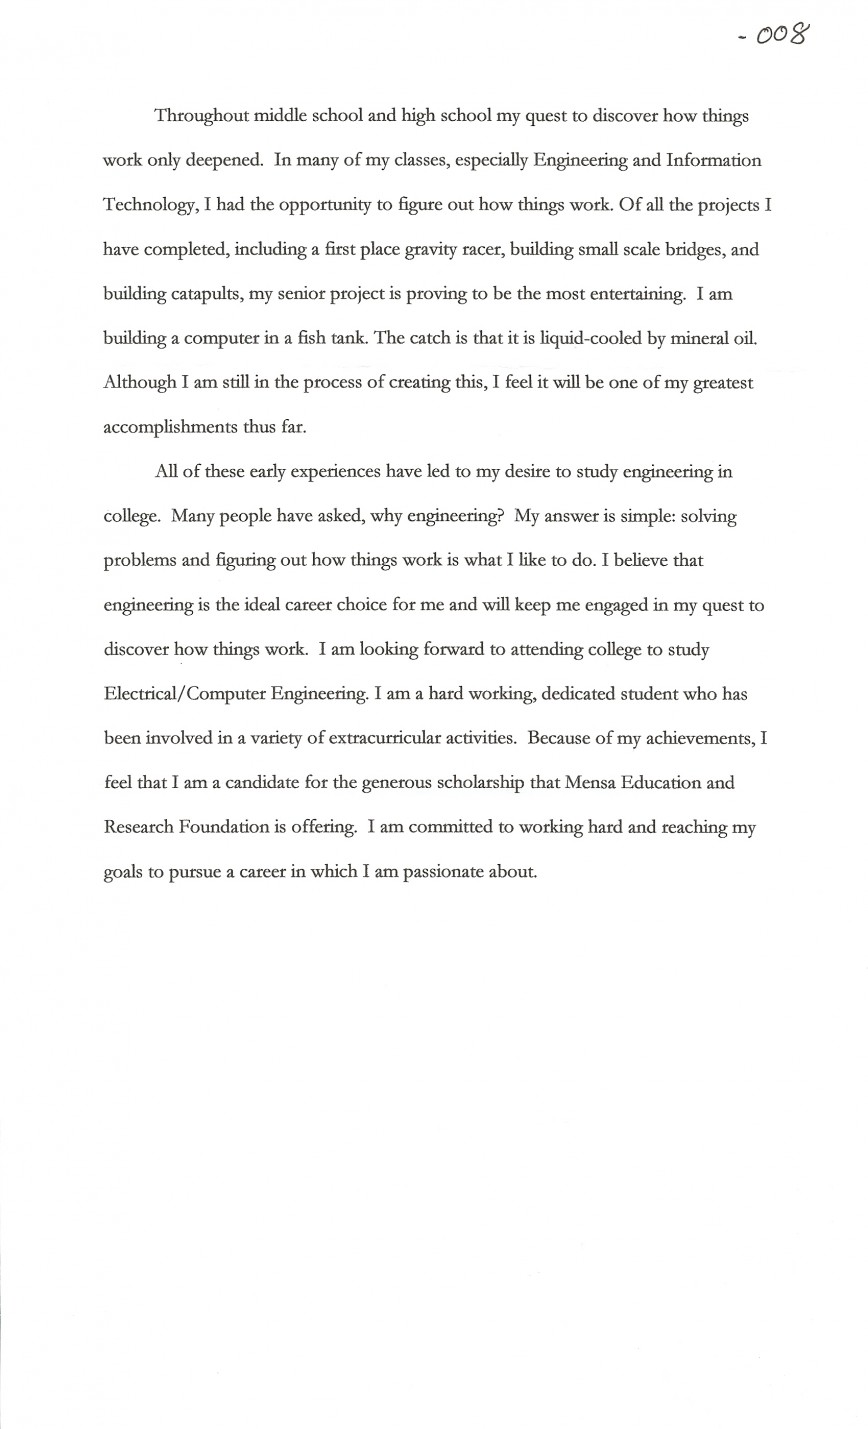 003 Joshua Cate Essay Example Educational Stunning Goals Public Education Professional College